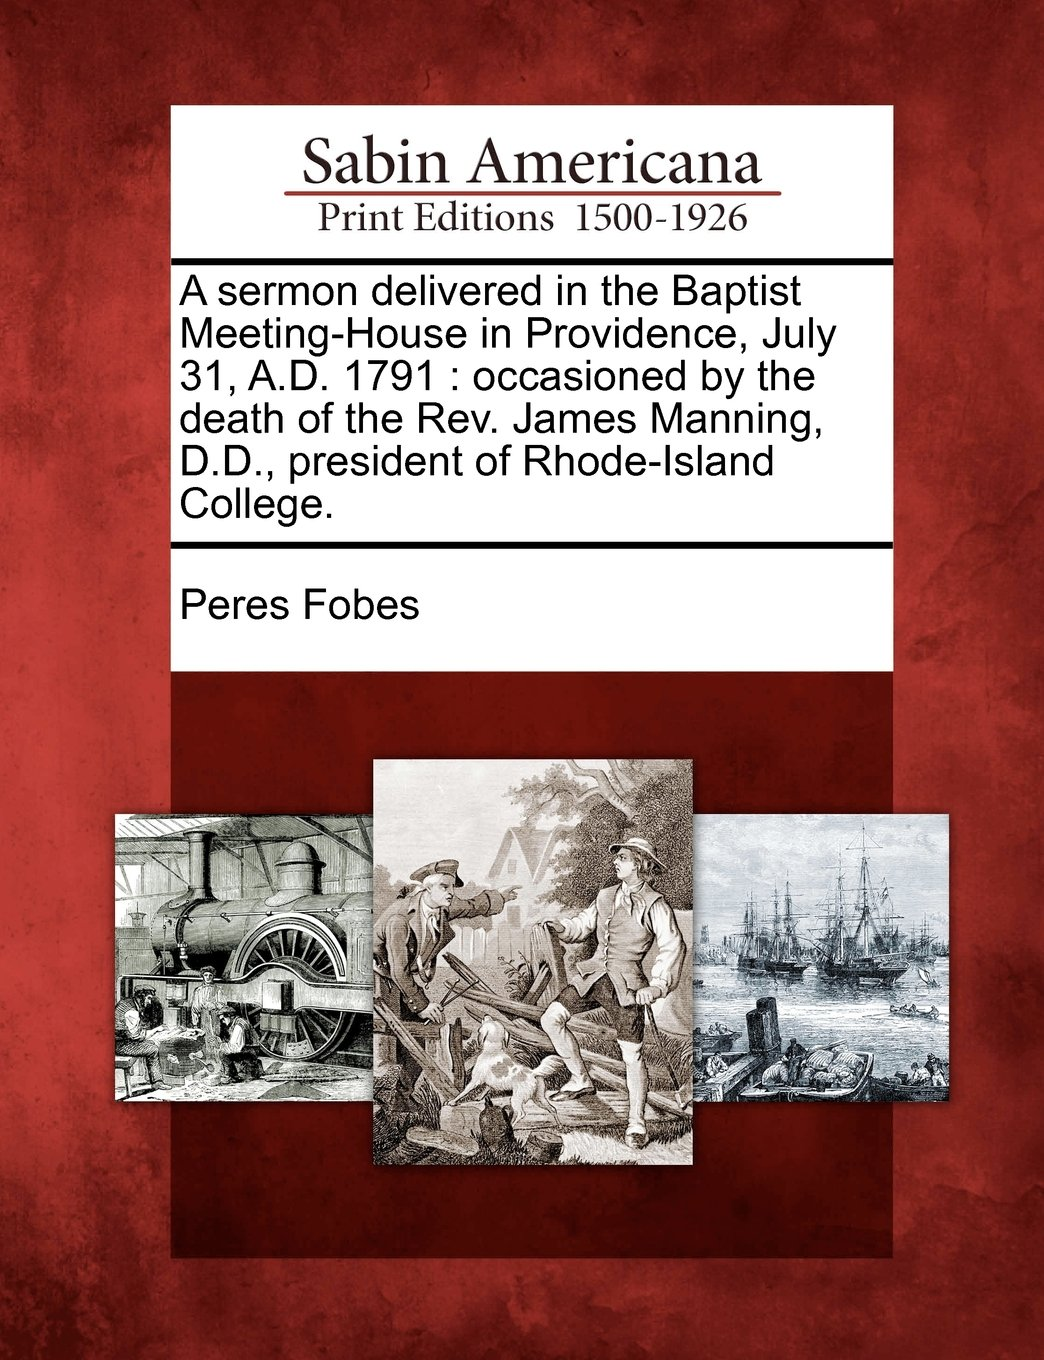 Download A sermon delivered in the Baptist Meeting-House in Providence, July 31, A.D. 1791: occasioned by the death of the Rev. James Manning, D.D., president of Rhode-Island College. PDF